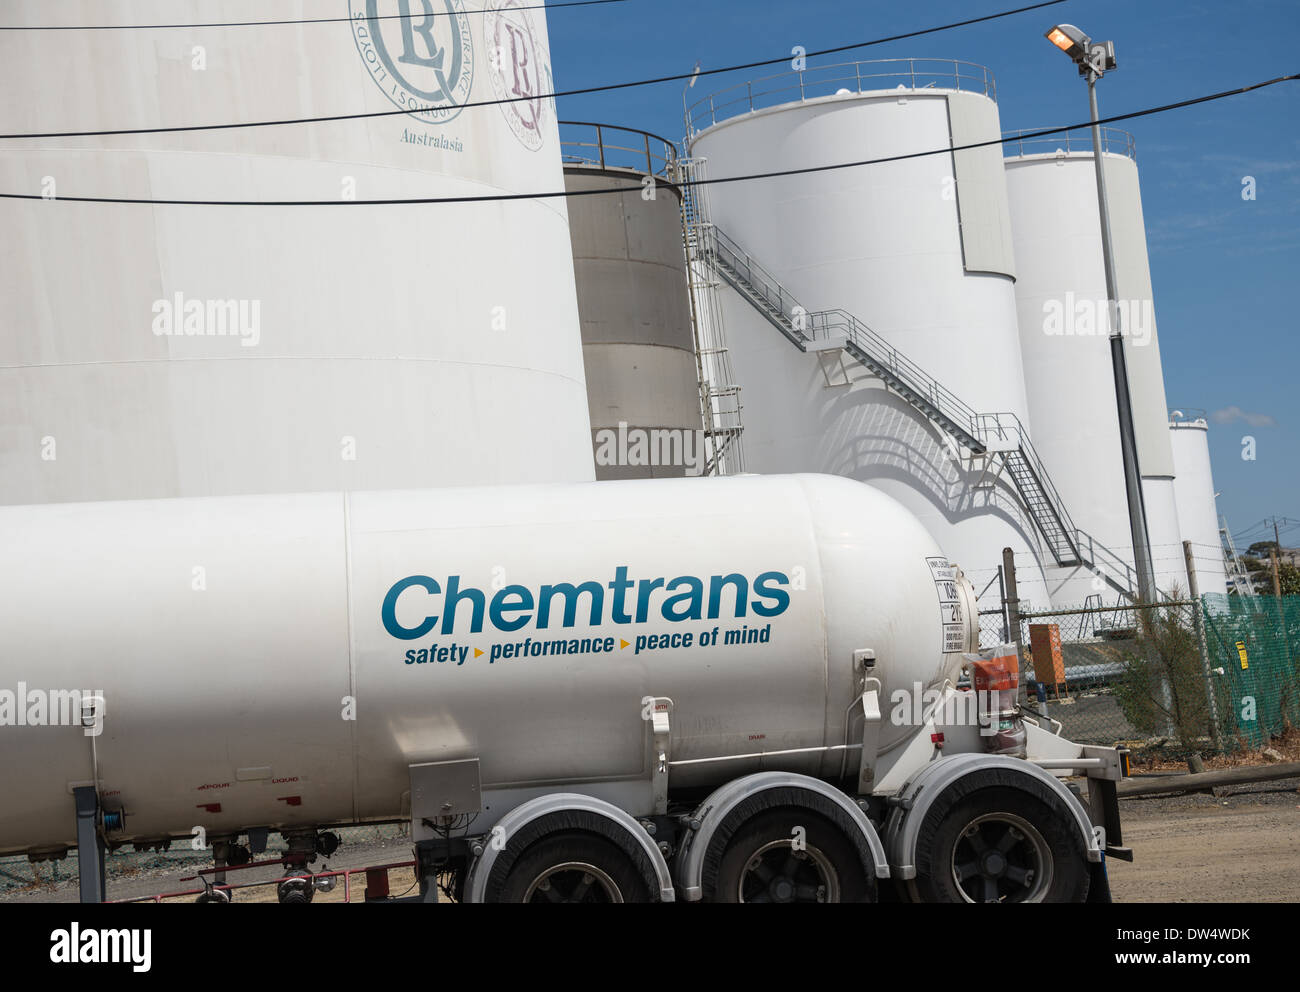 Chemtran chemical petrol industry tankers storage liquid transportation chemical and bulk material transport - Stock Image